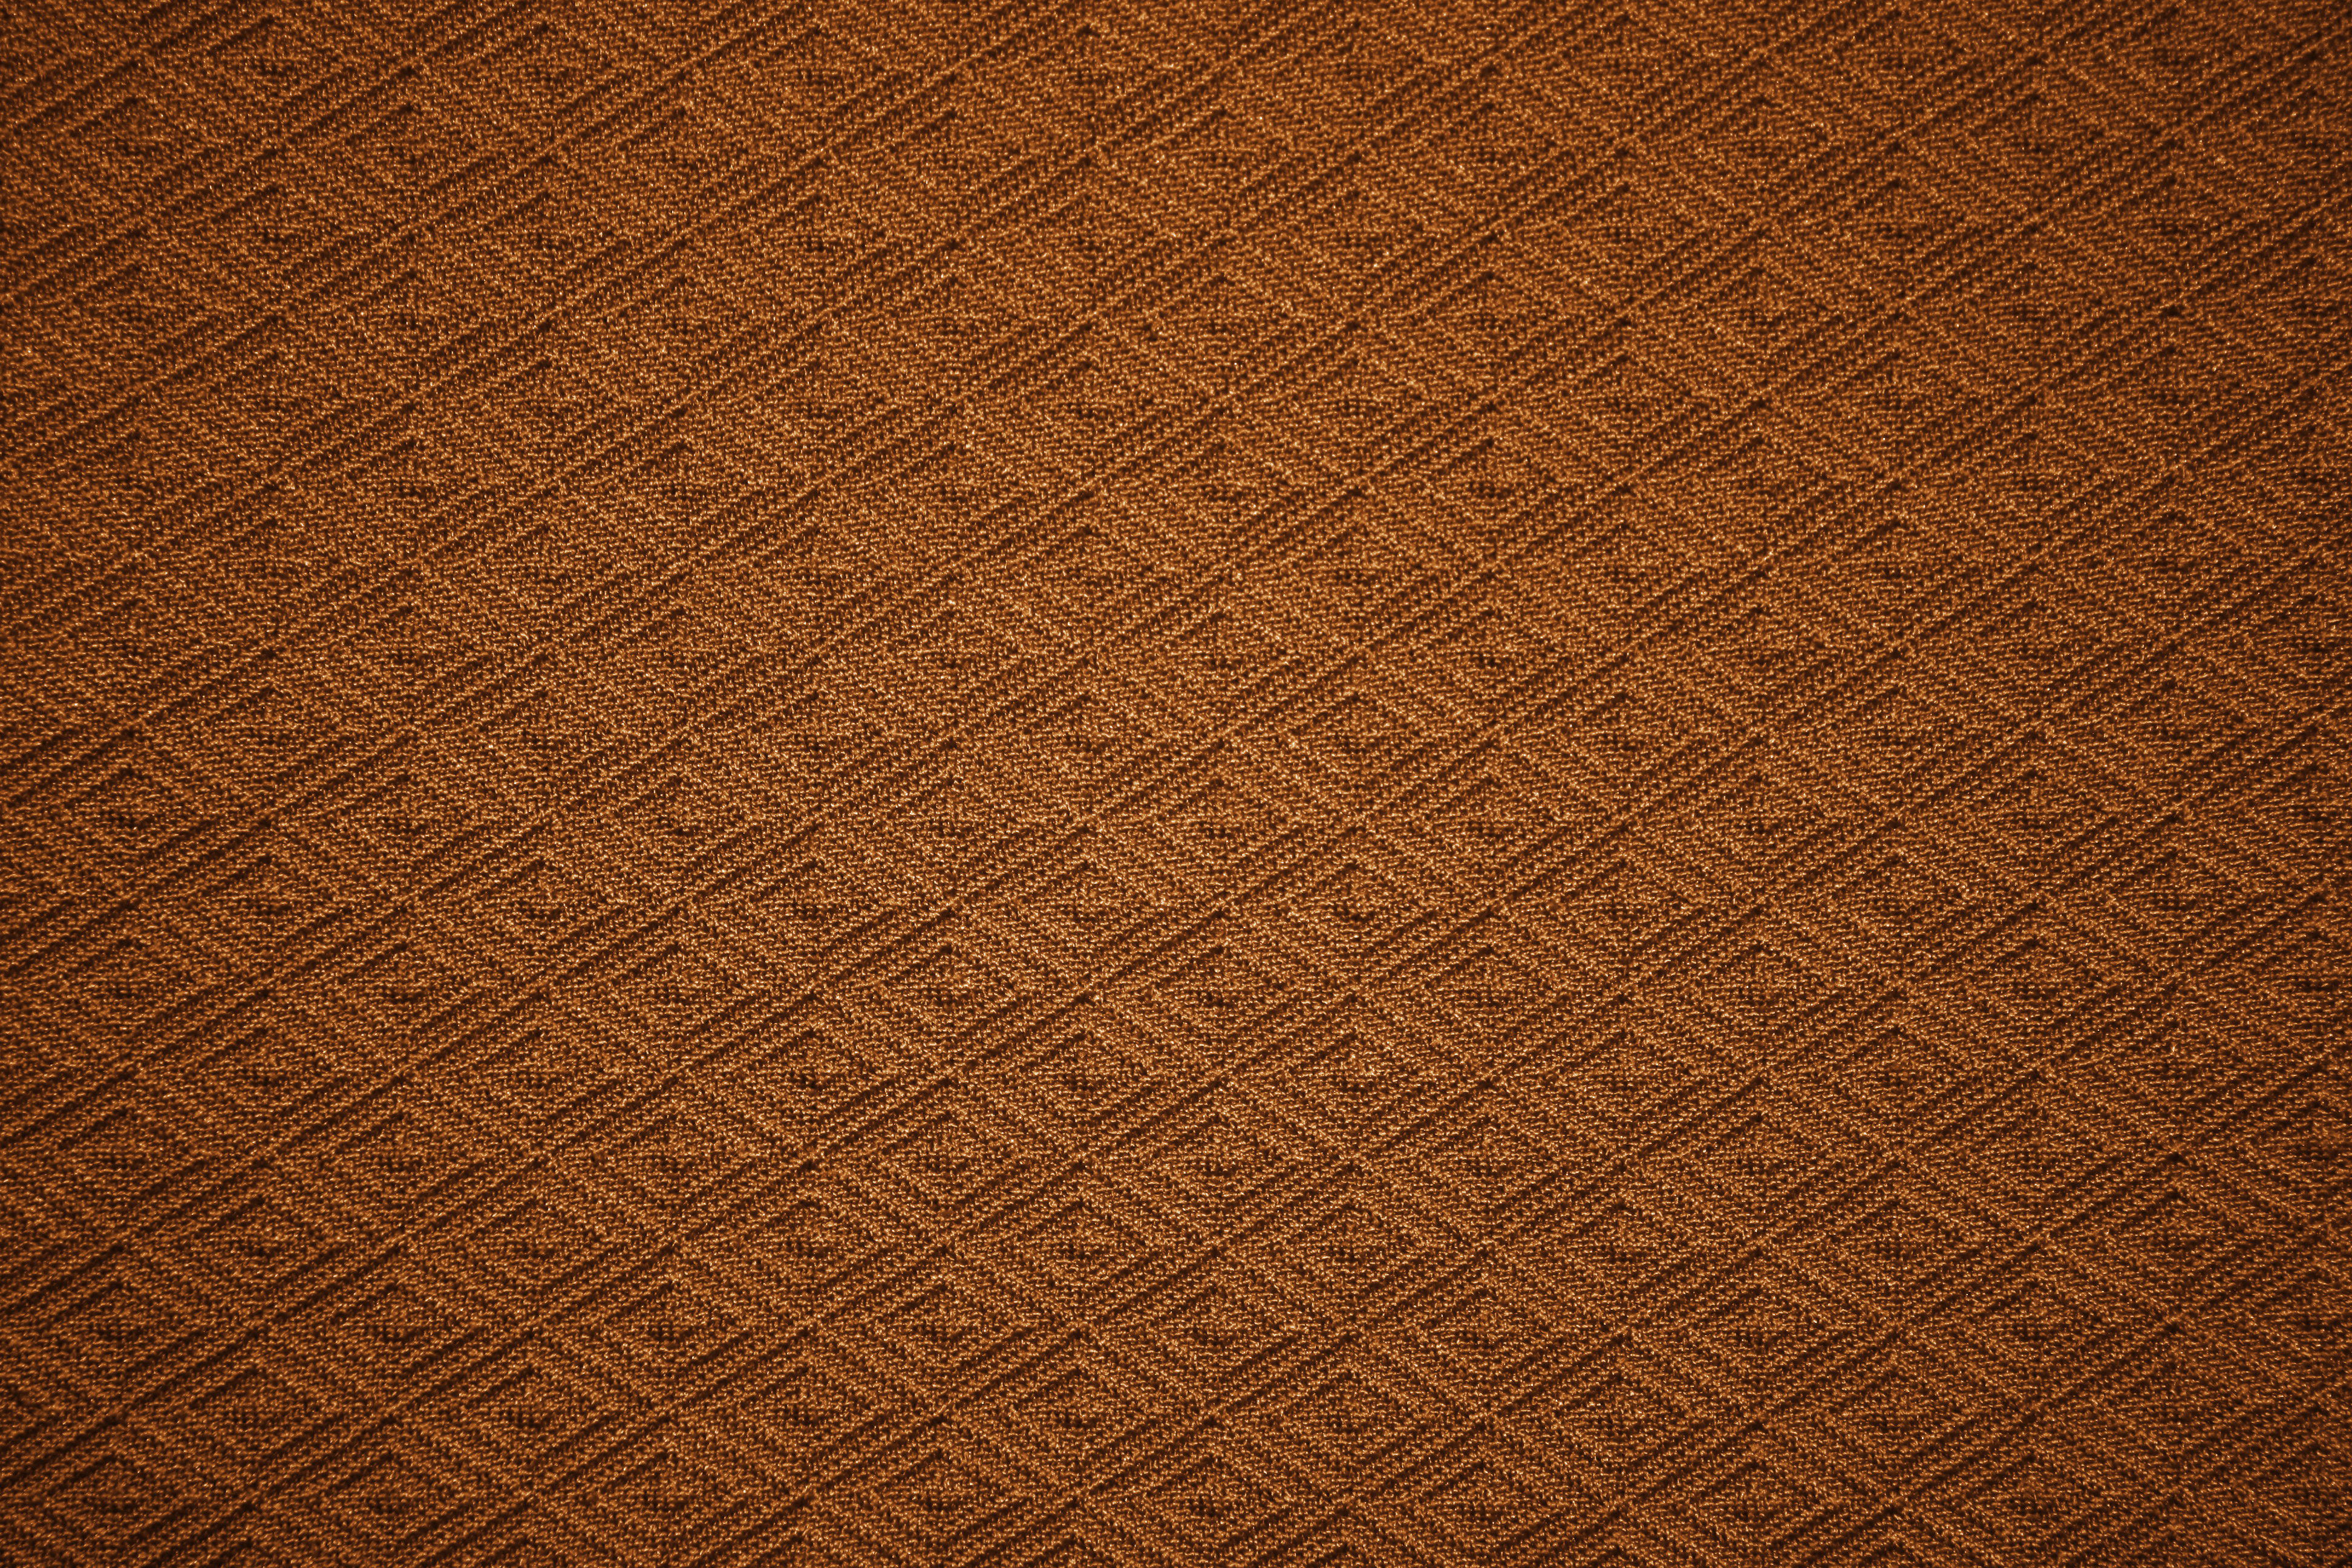 d20aa8f7f9f Chocolate Brown Knit Fabric with Diamond Pattern Texture Picture ...